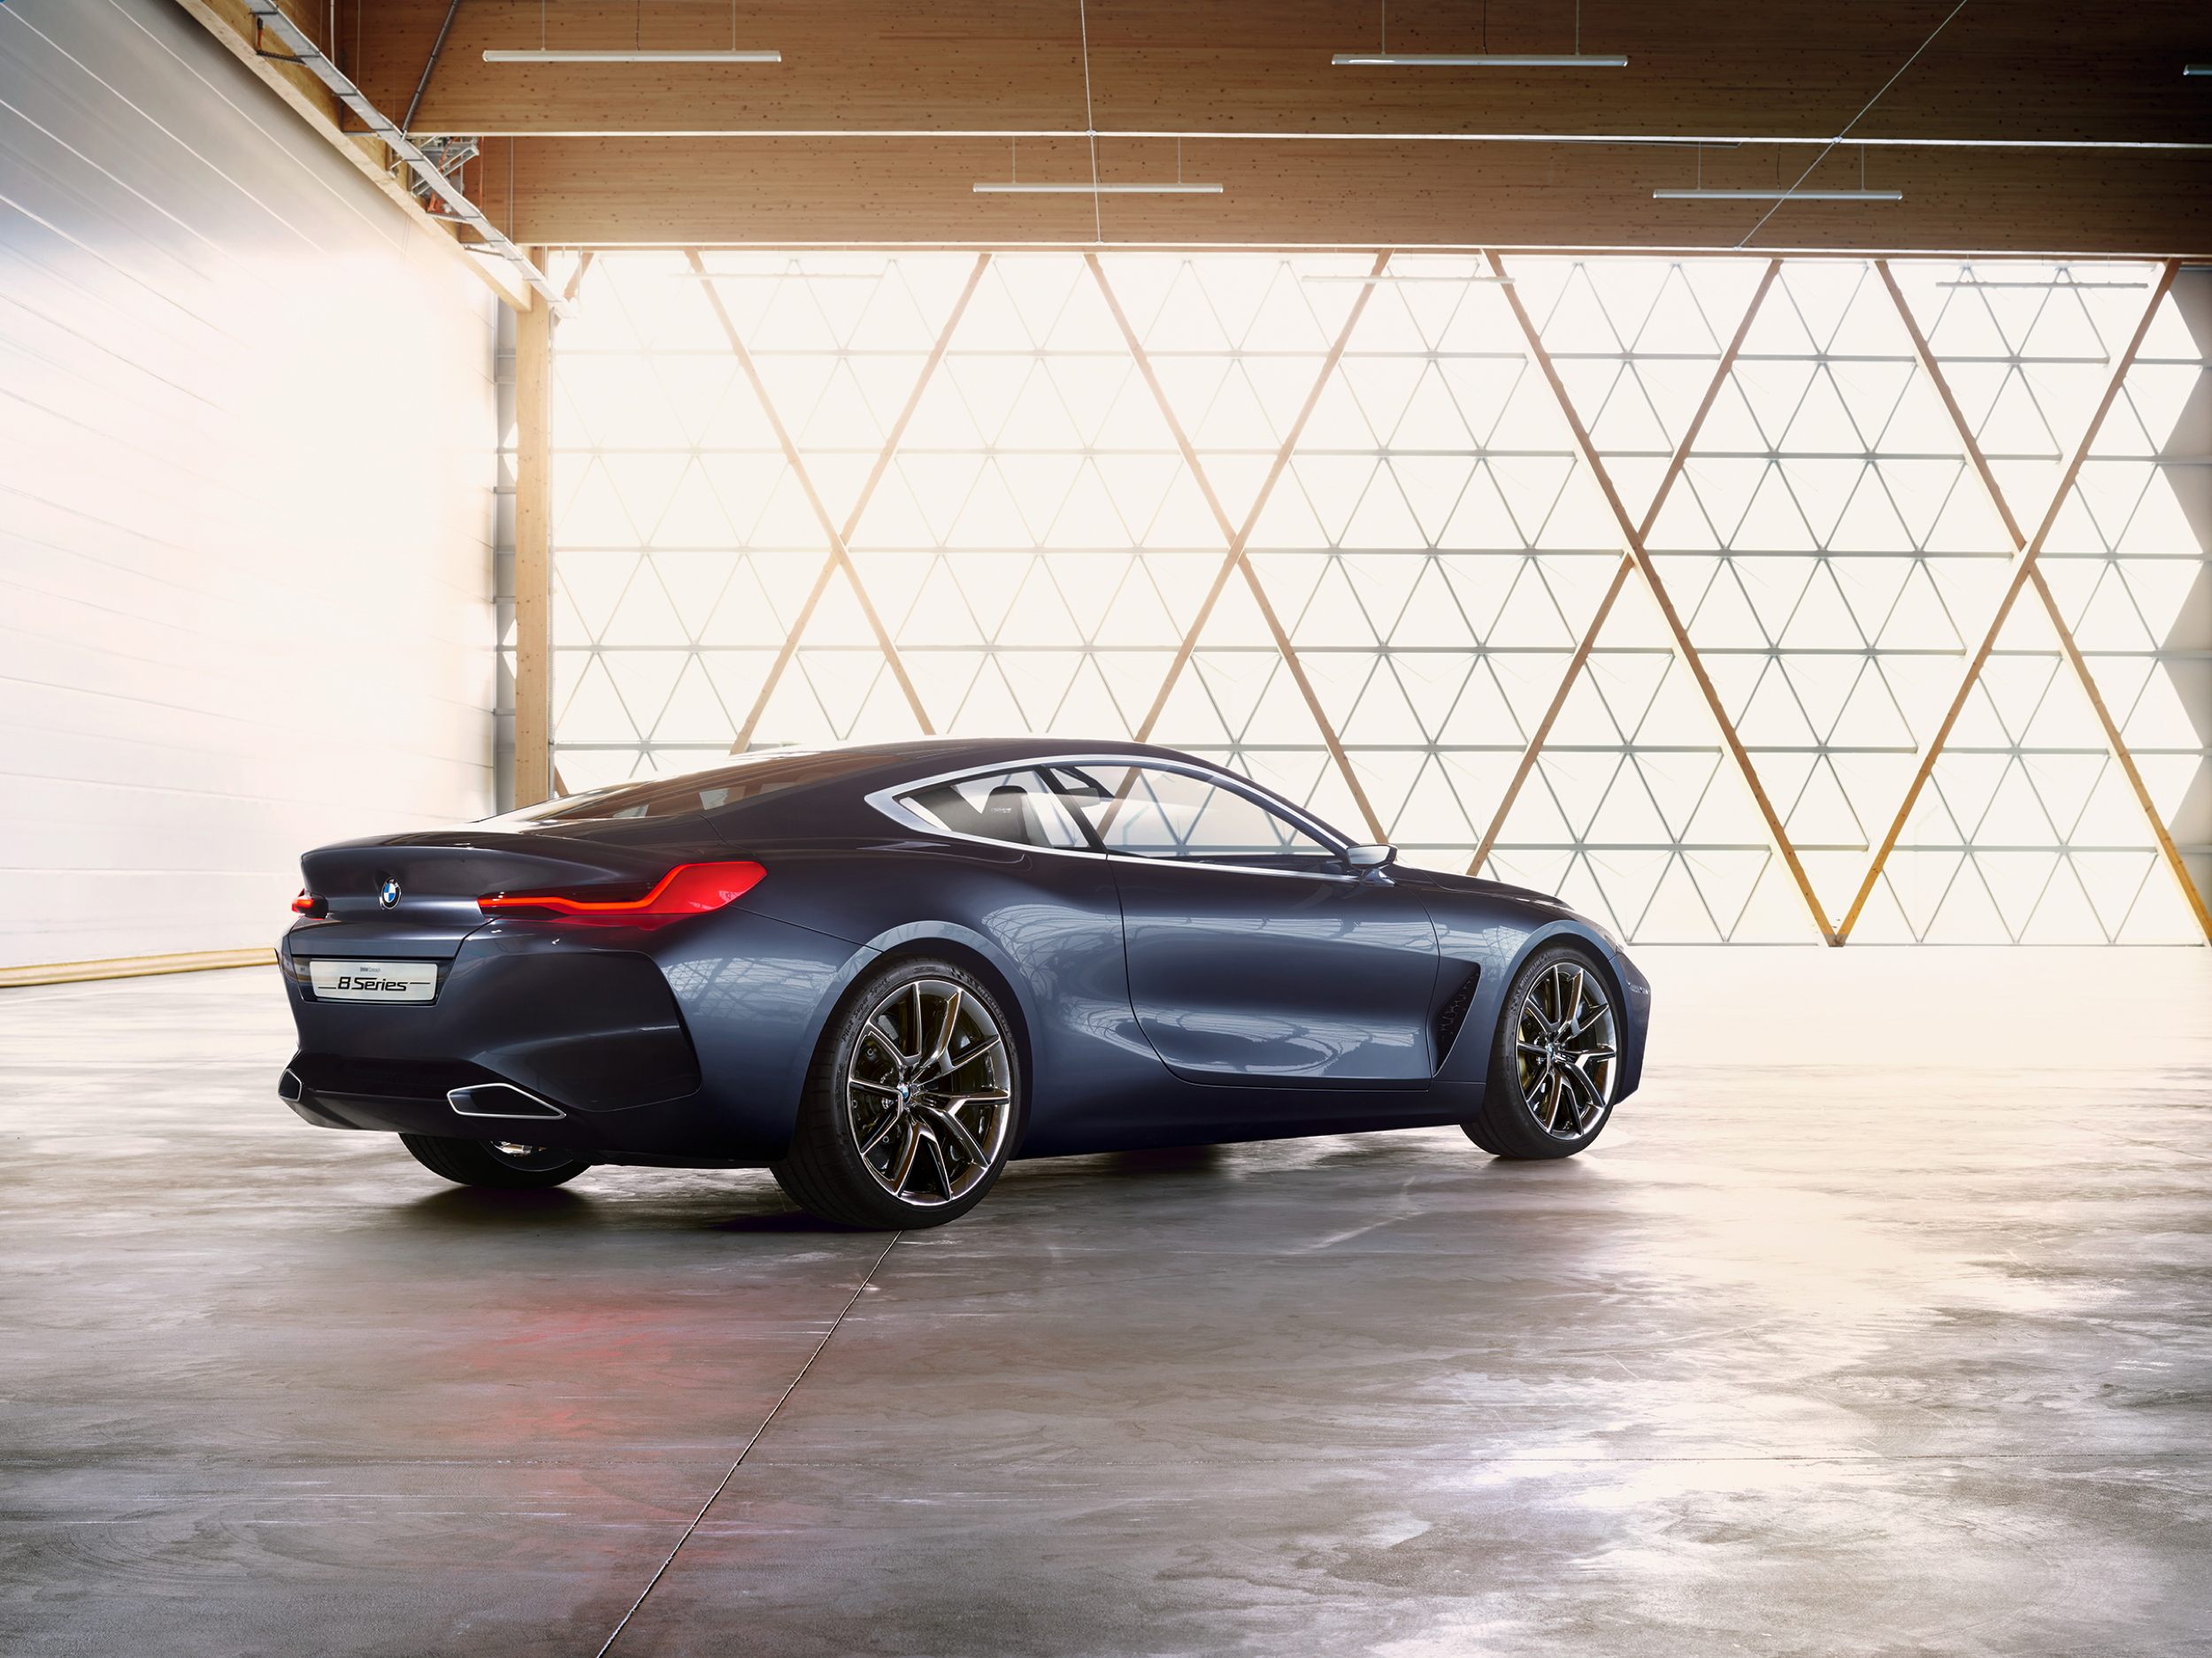 BMW Concept 8 Series rear angle 2